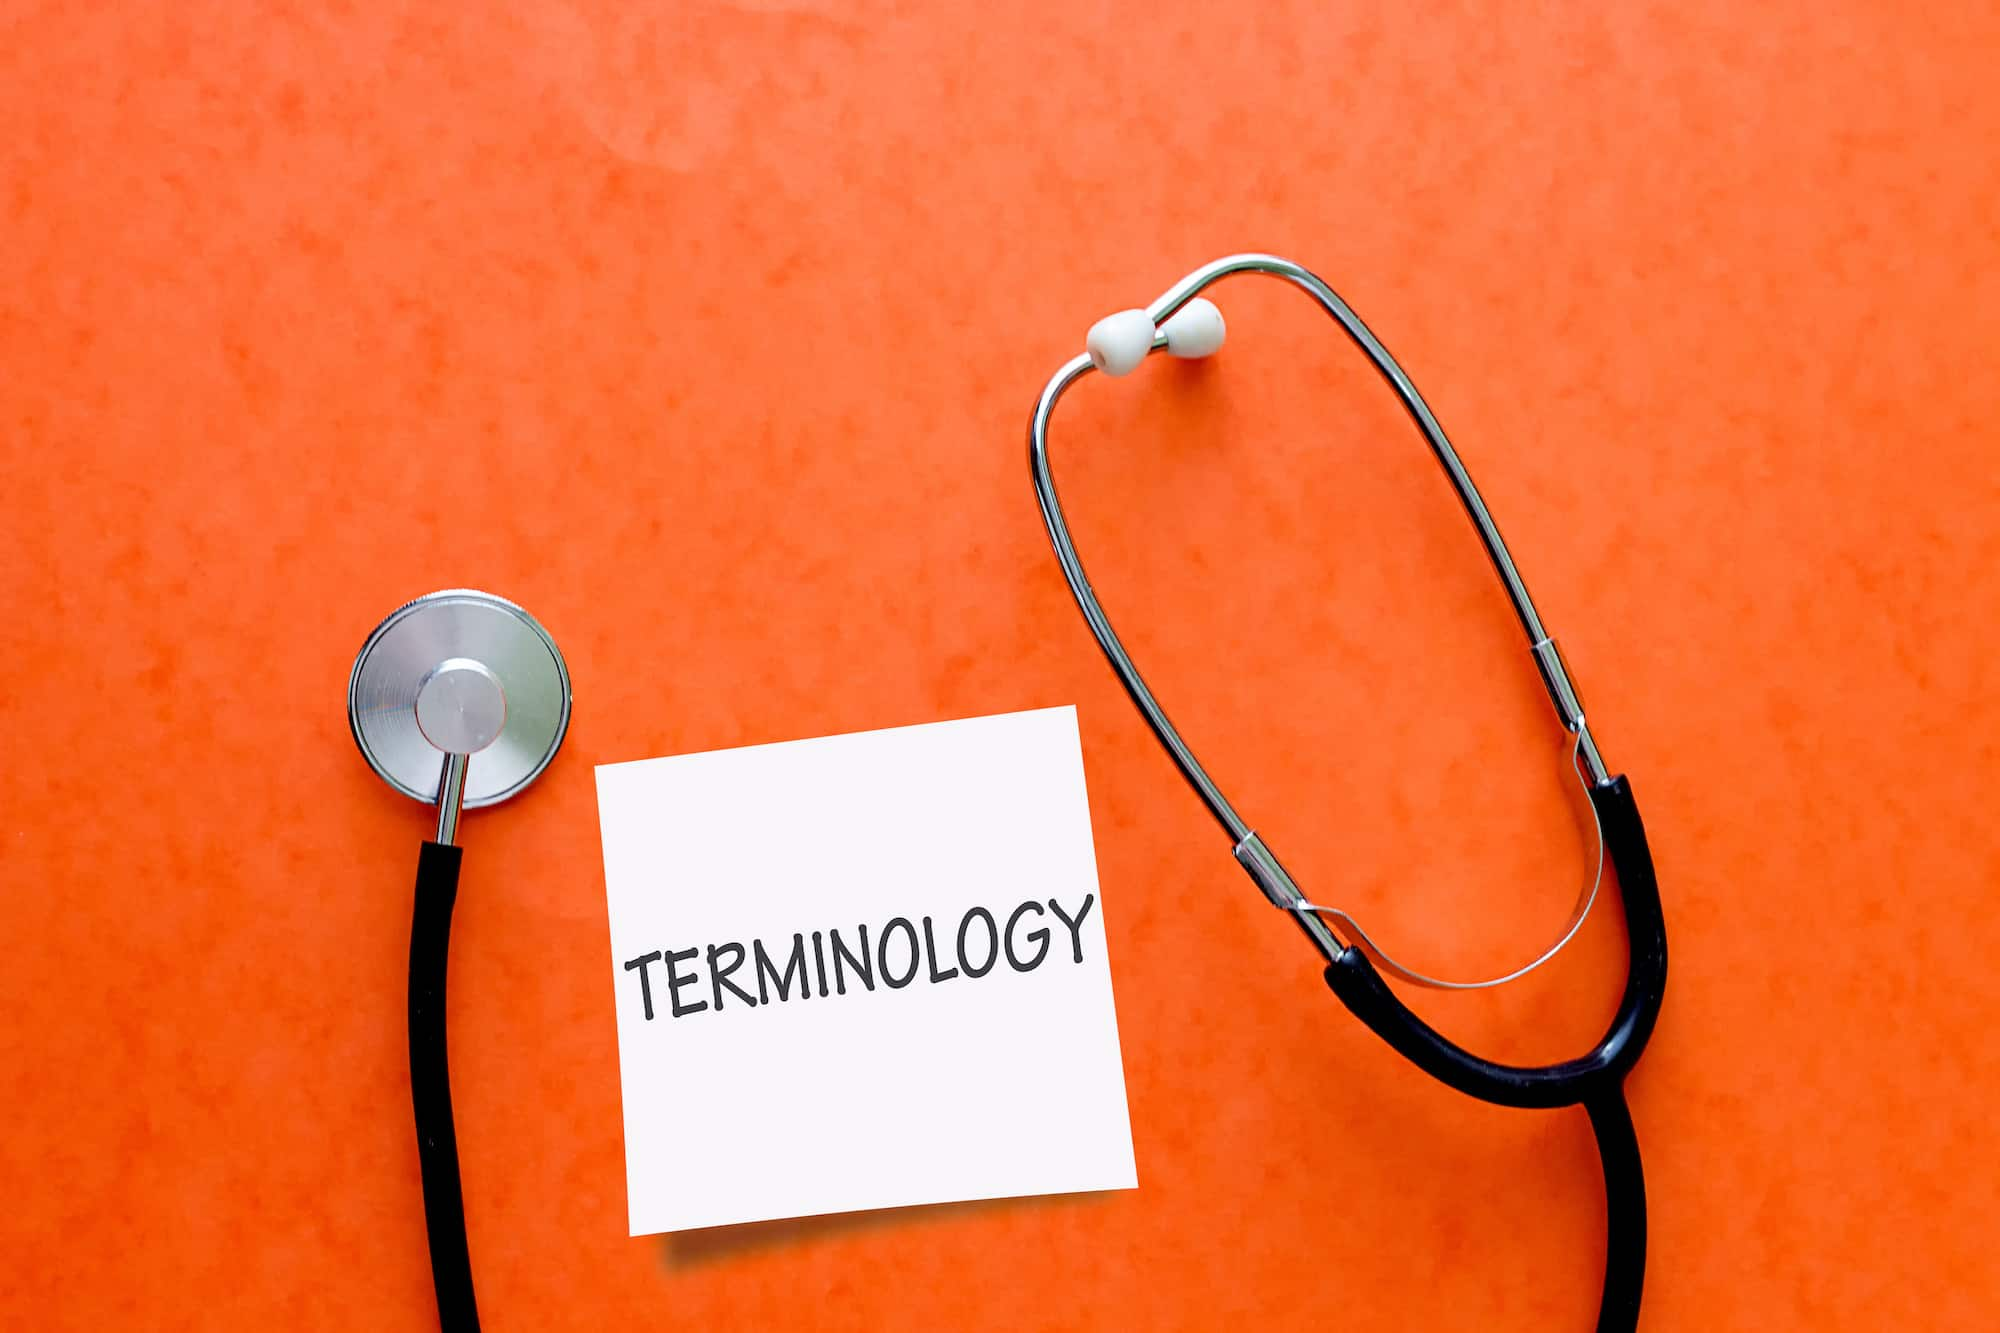 Online Medical Terminology Resources